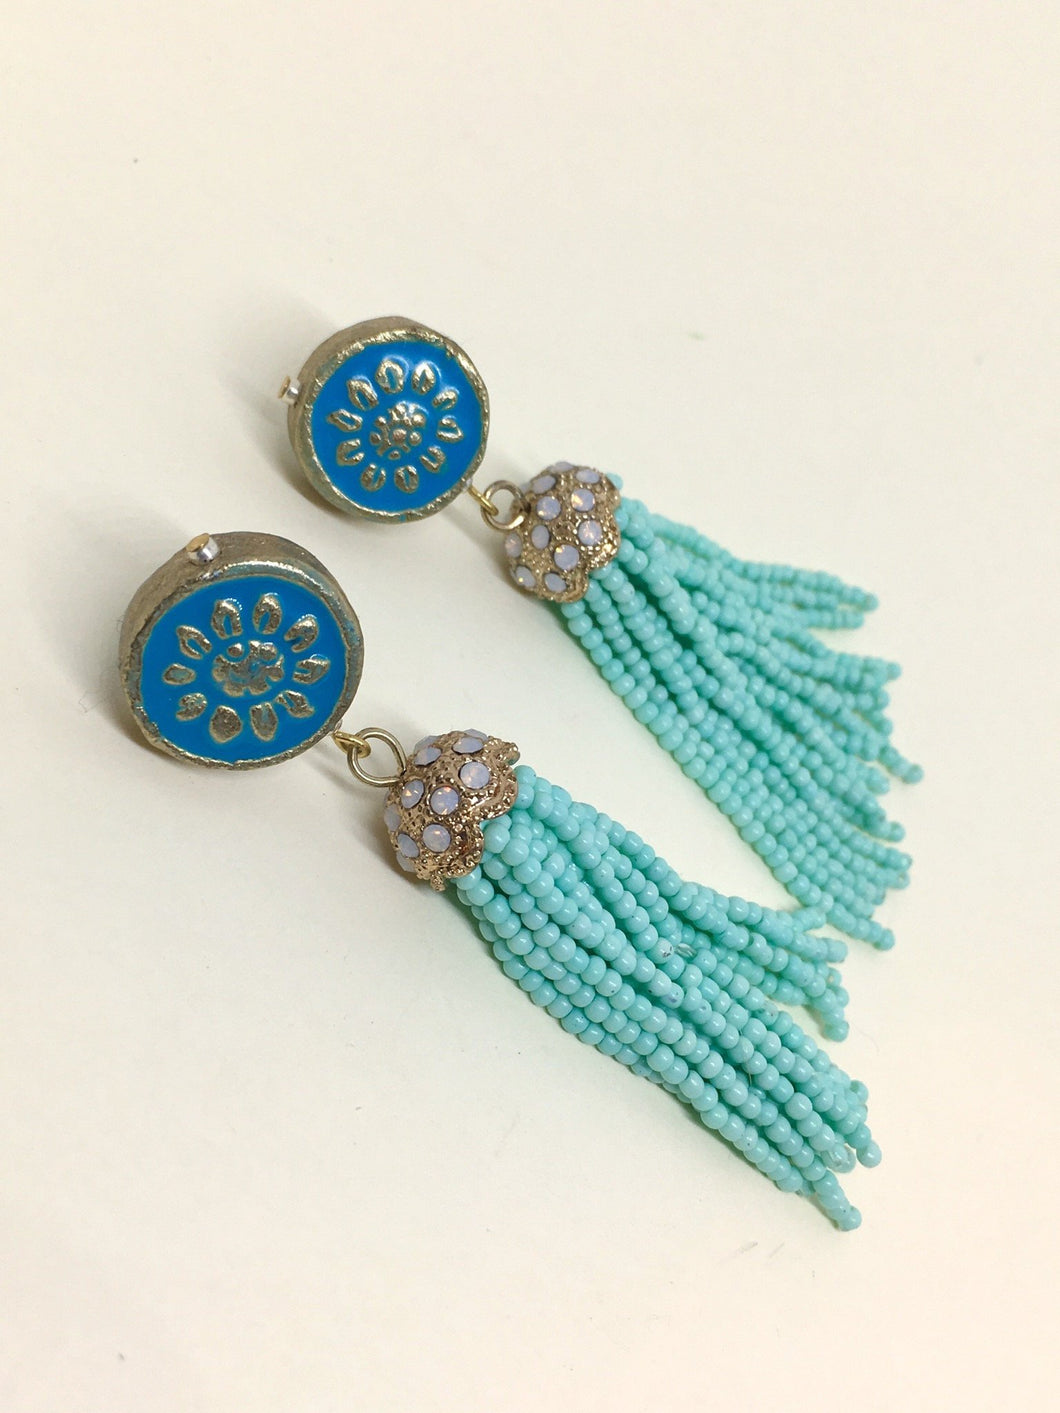 Sea flower - Strung beats on round  enameled mosaic ceramic bead earring.